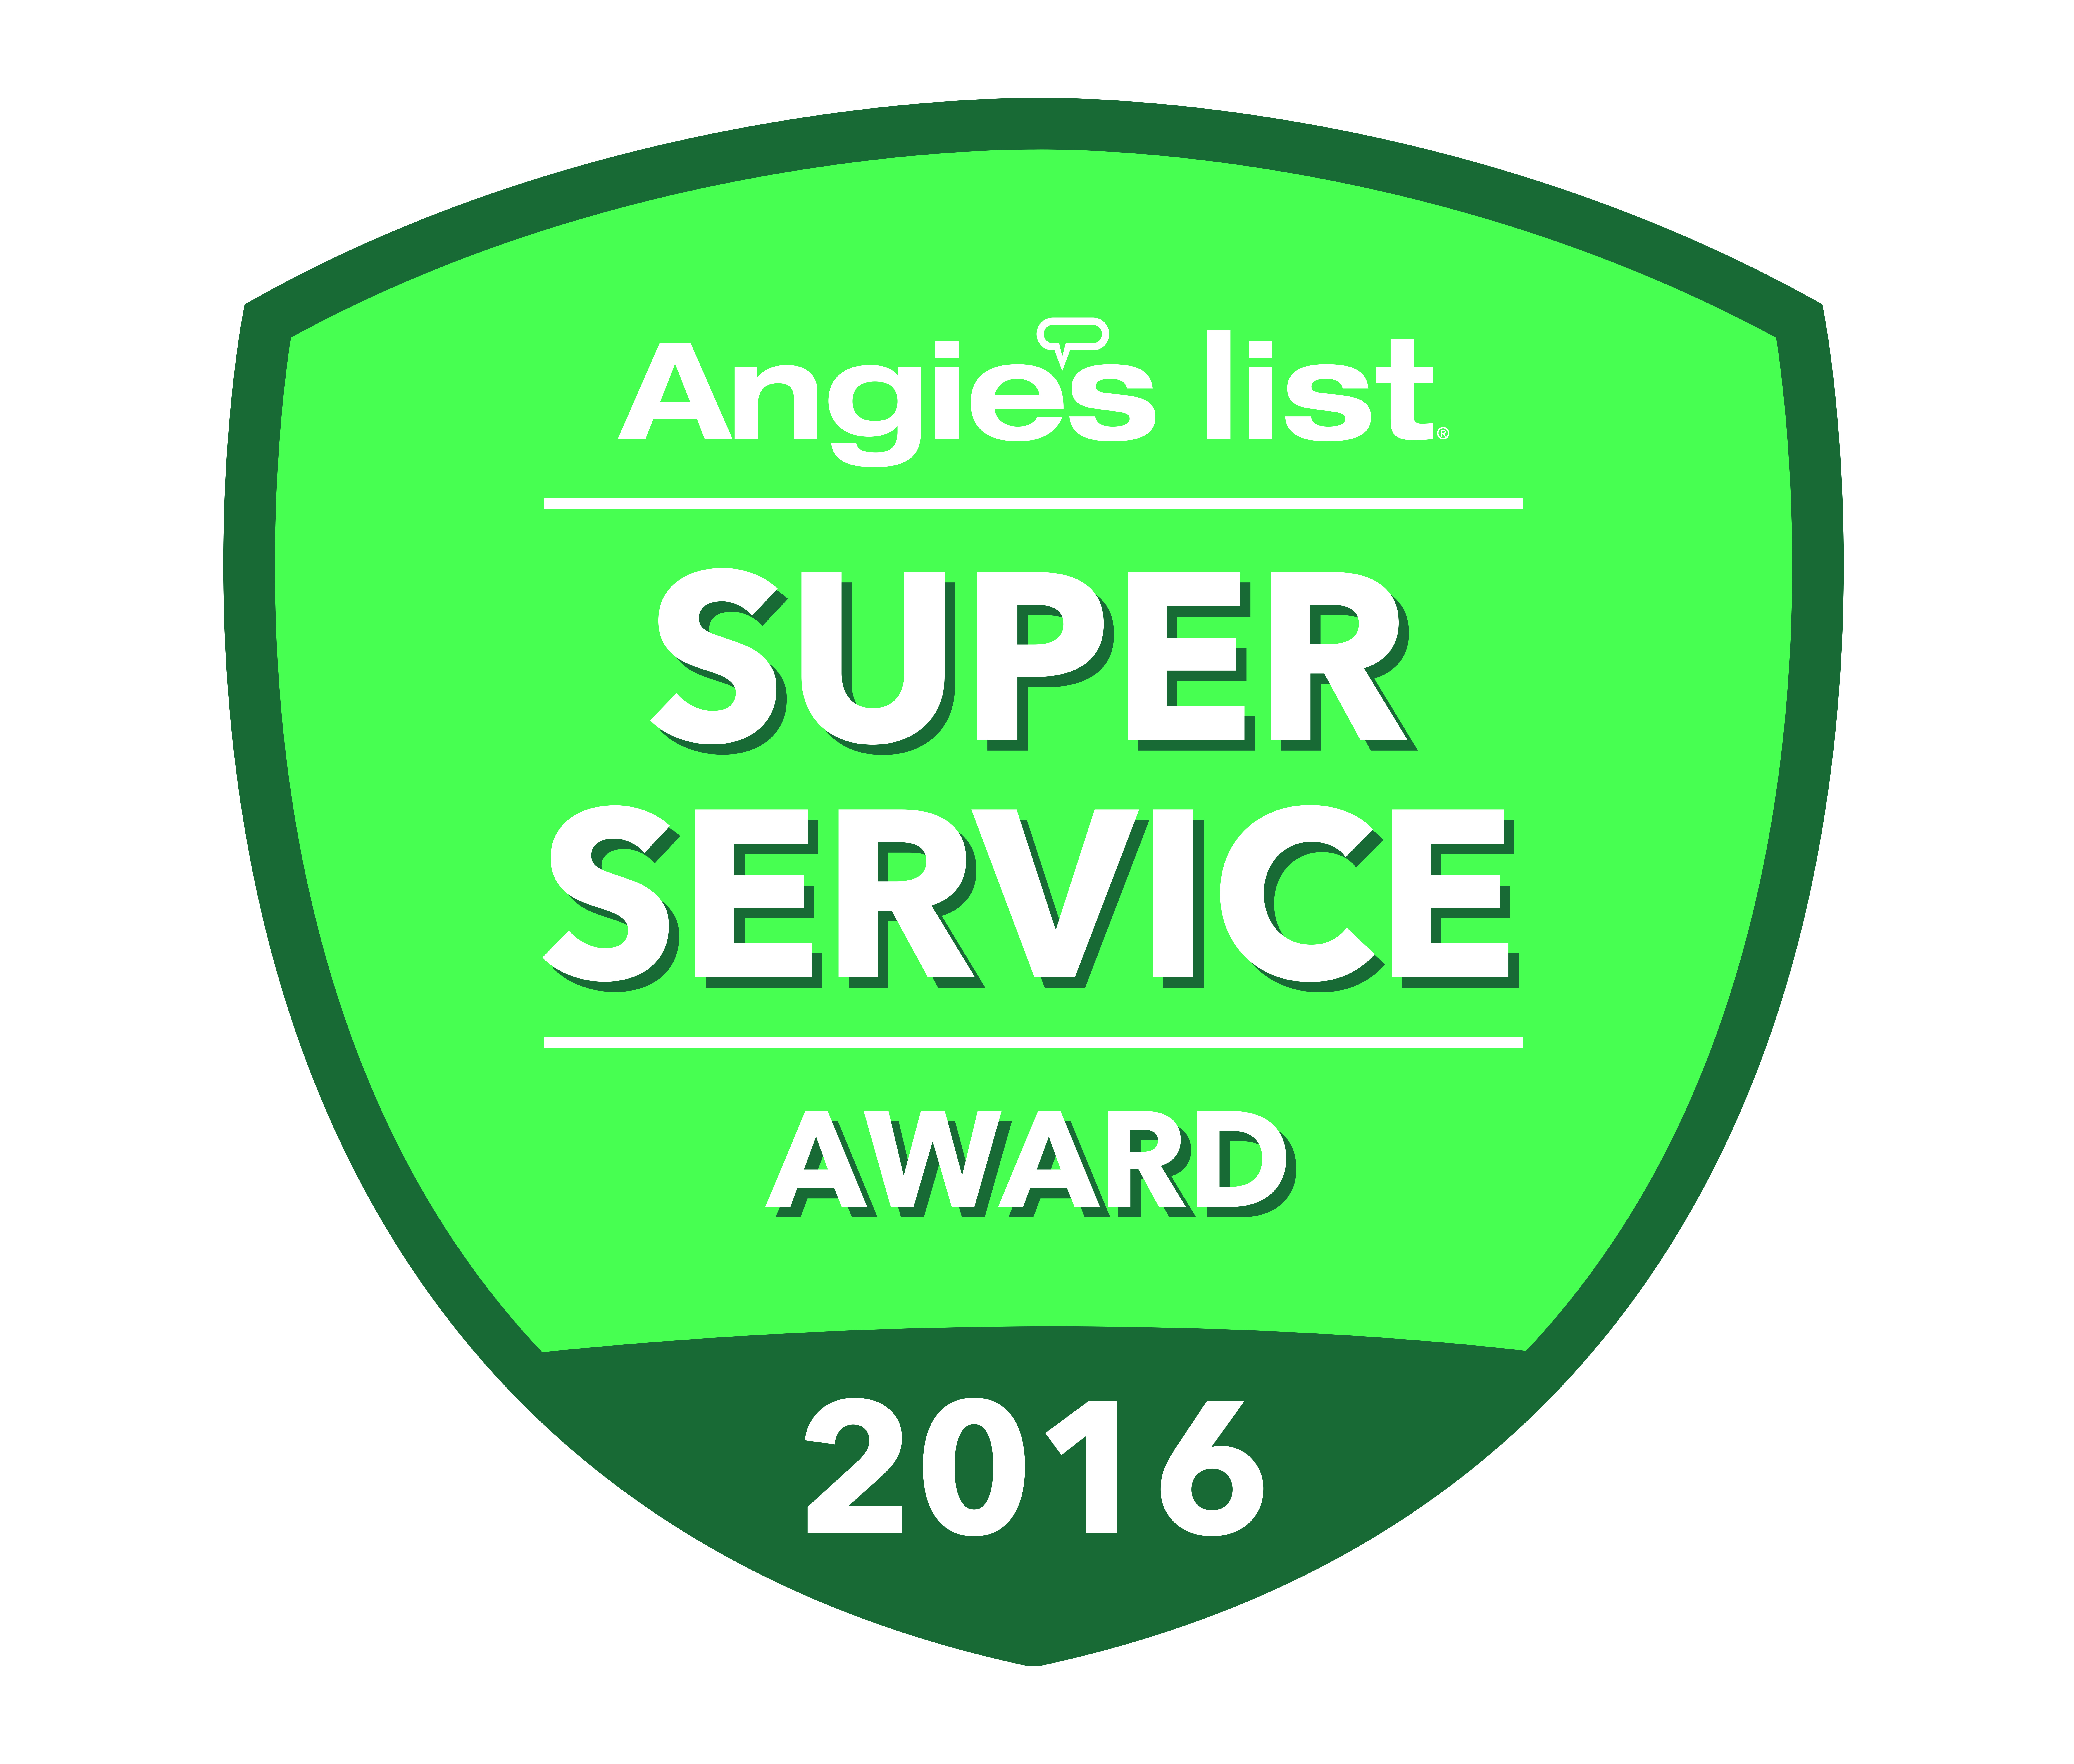 """Termite Terry wins the """"Angie's List Super Service Award"""" for the 7th year in a row"""